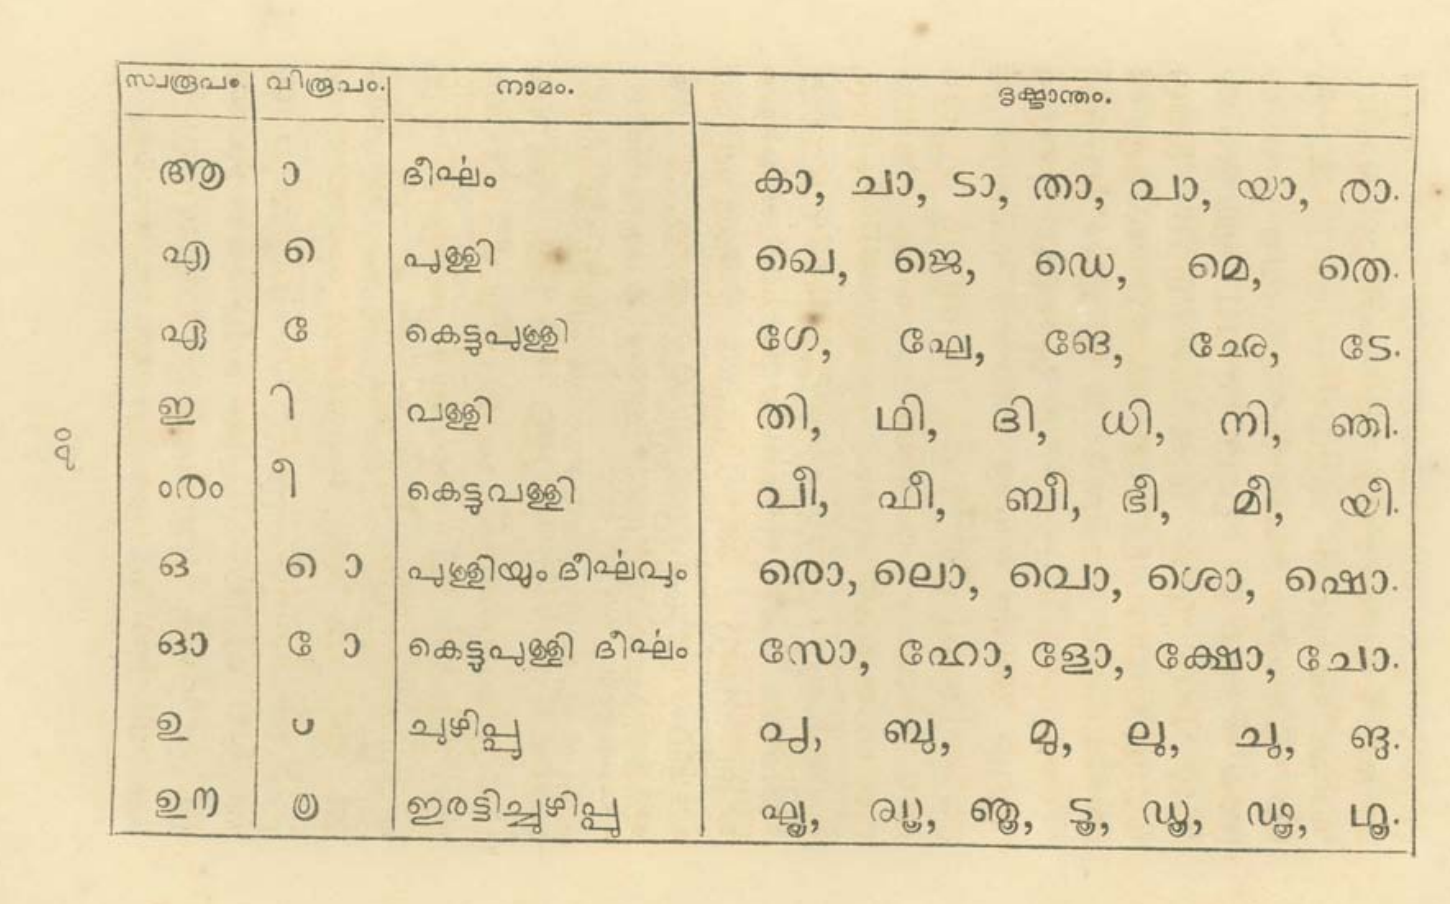 Excerpt from 'Grammar of Malayalam' describing how vowel signs modify base consonant shapes.